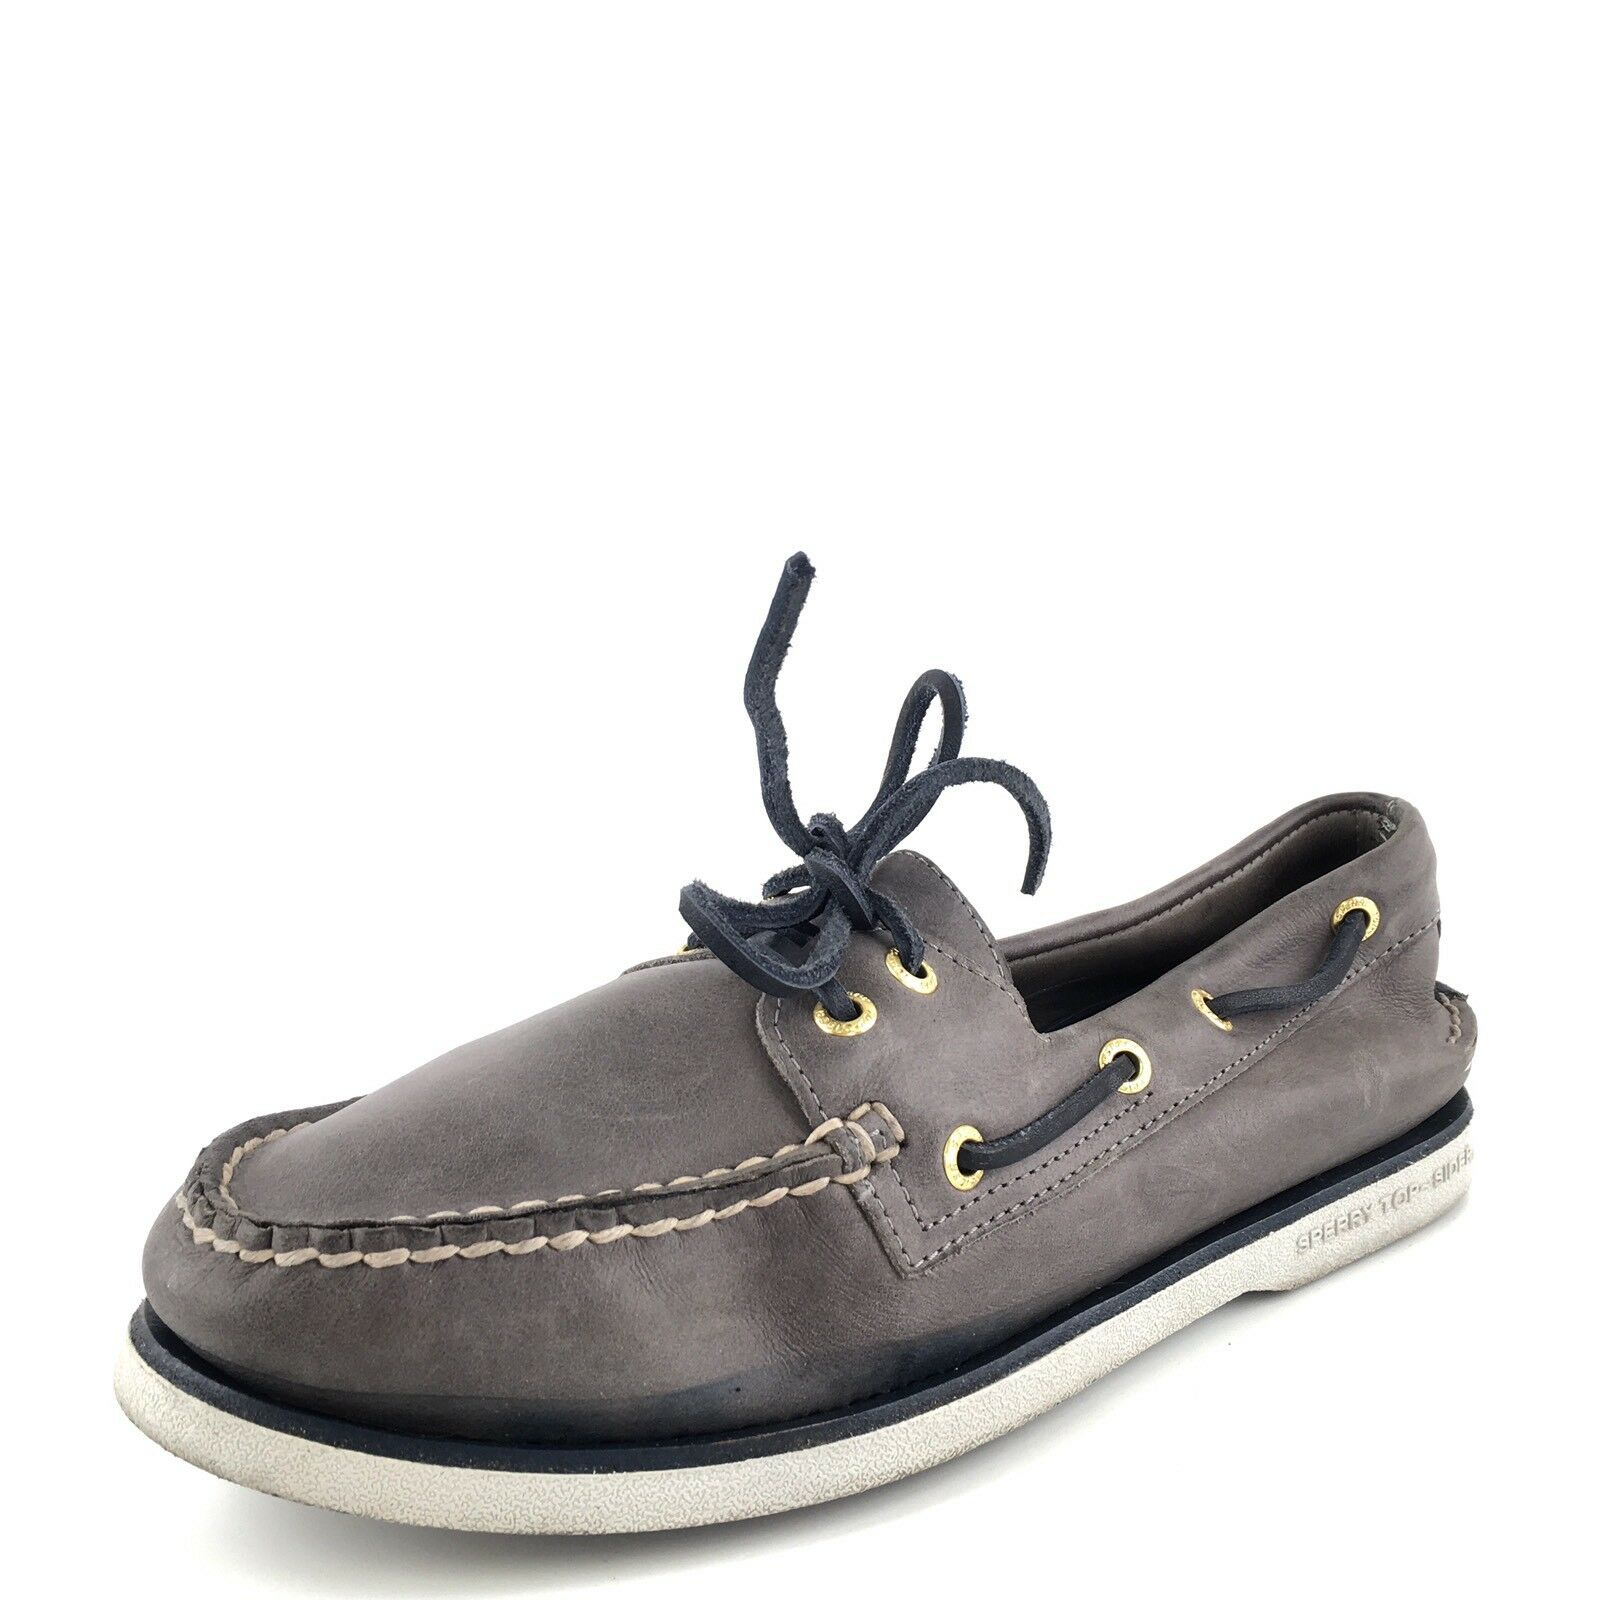 Sperry Top-Sider Gold Cup Original Gray Navy Leather Boat Shoes Men's Size 8 M*